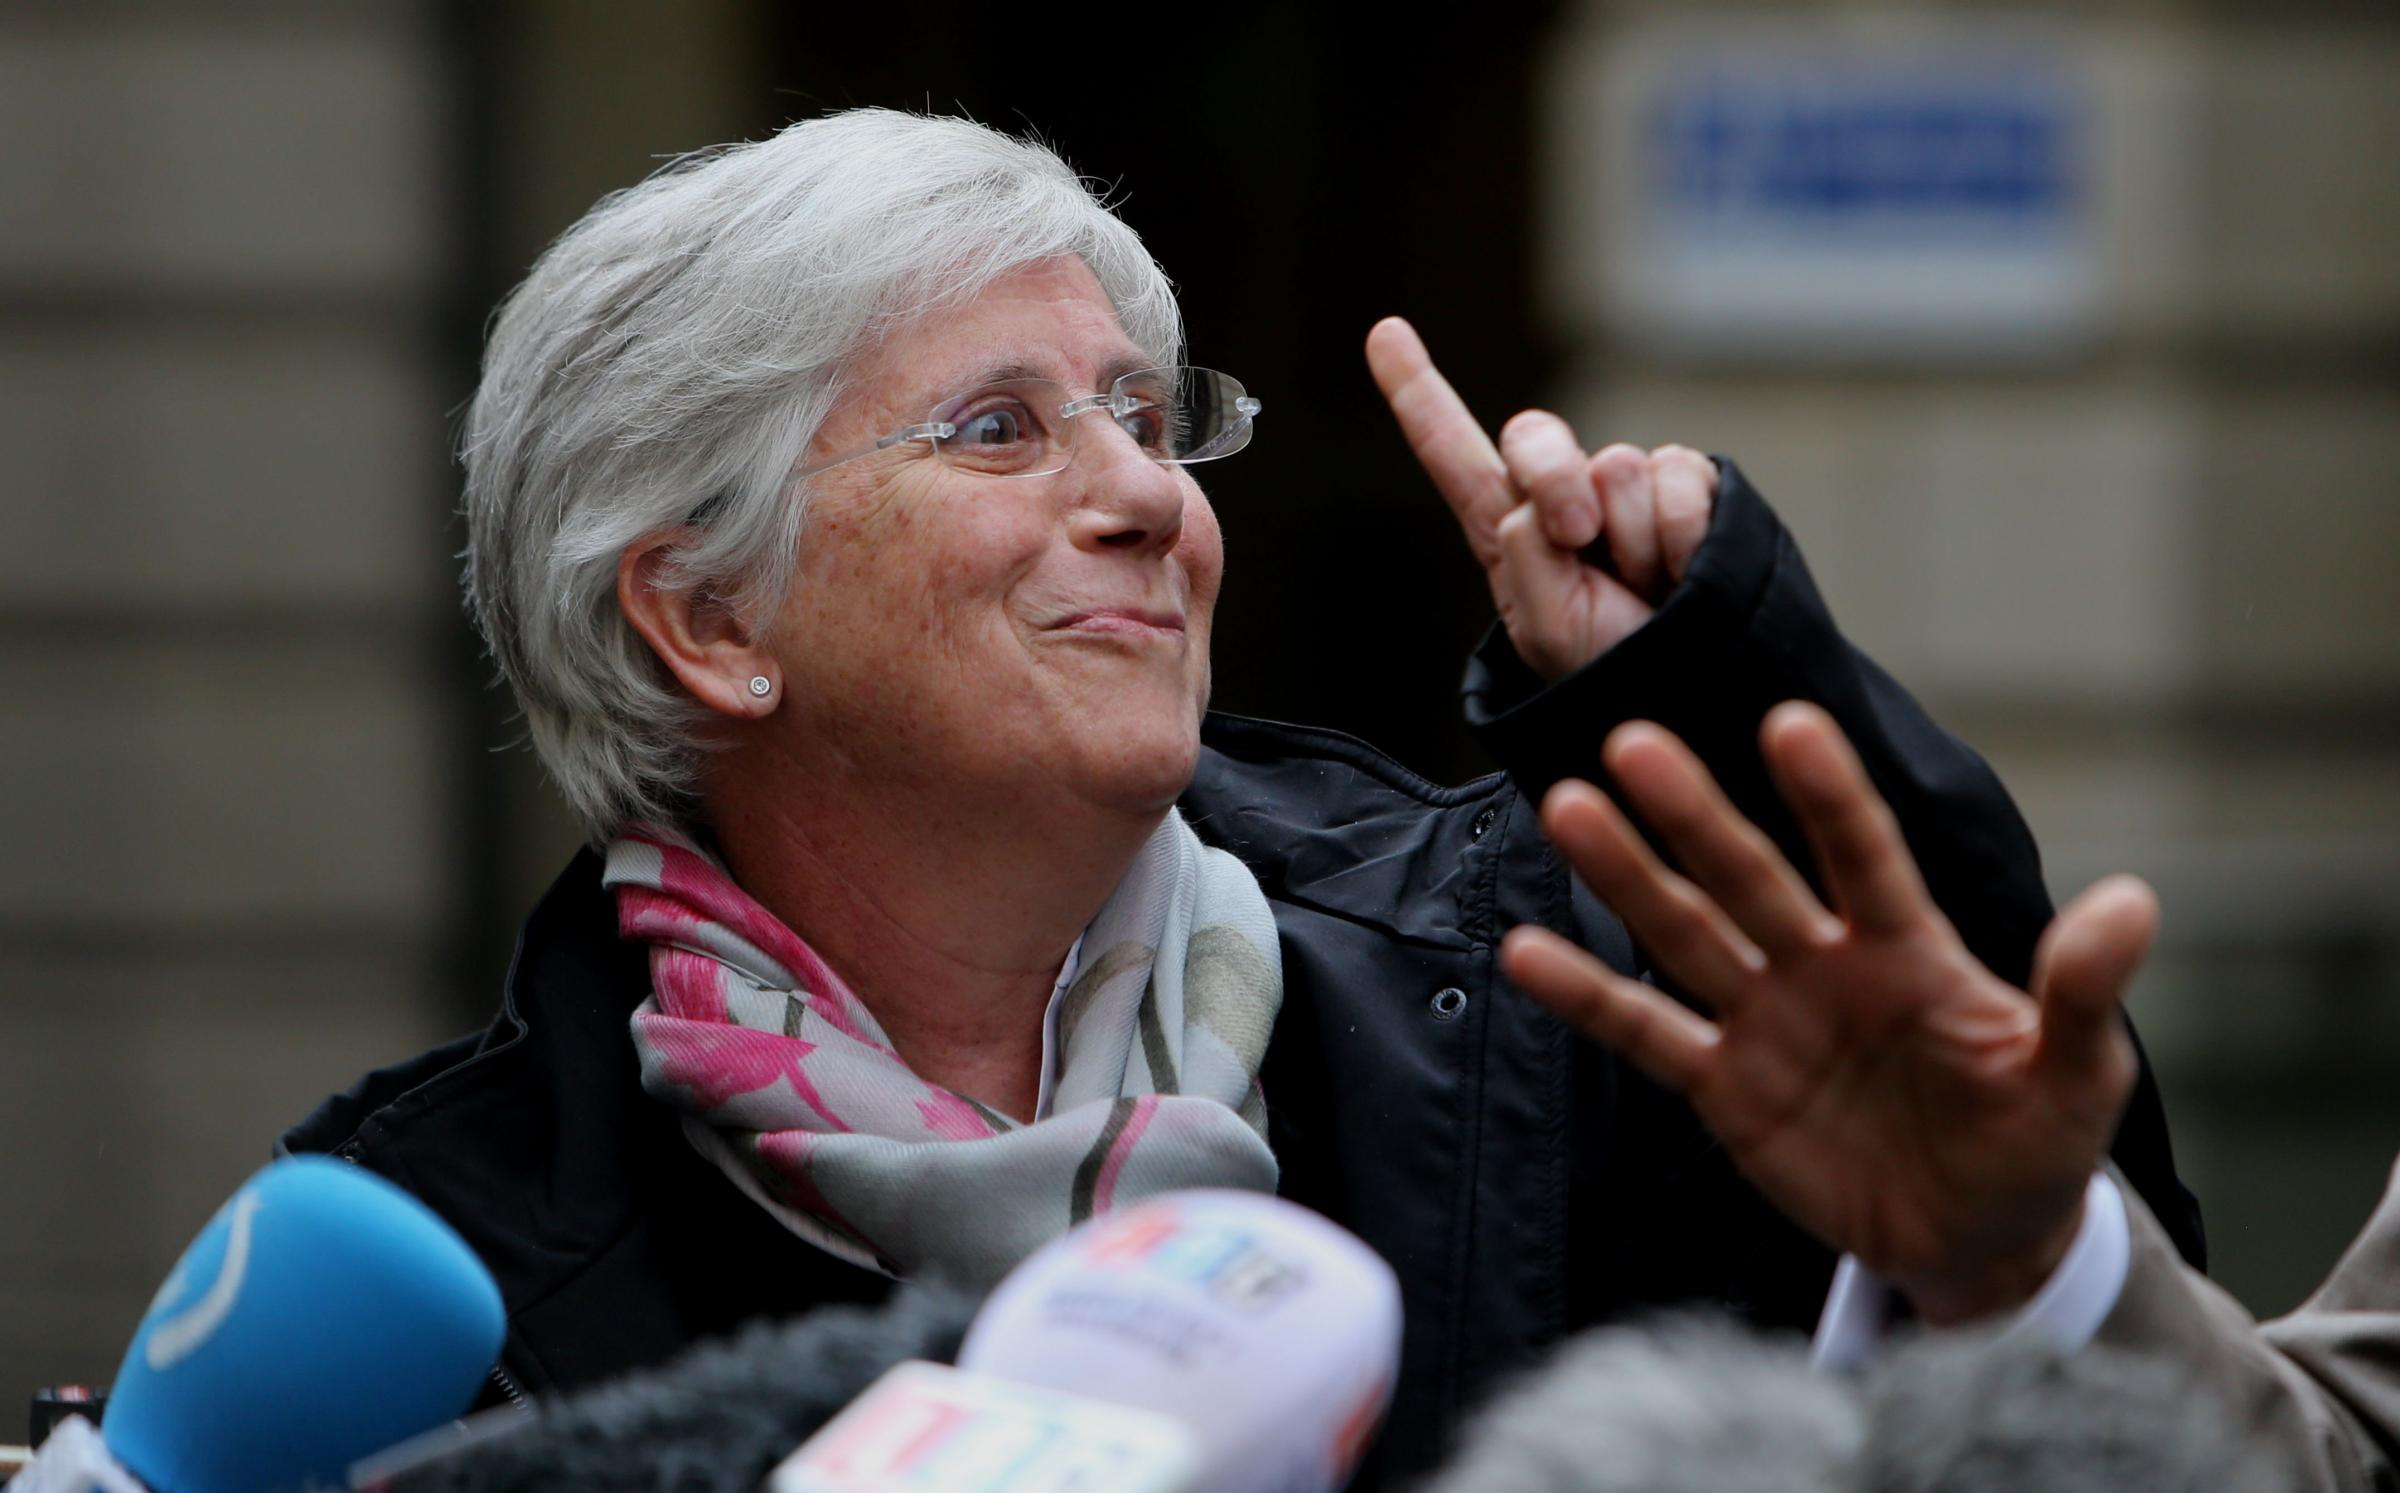 Former Catalan minister Clara Ponsatí greets the crowds in Edinburgh after being granted bail pending an extradition hearing this month. Picture: Gordon Terris.